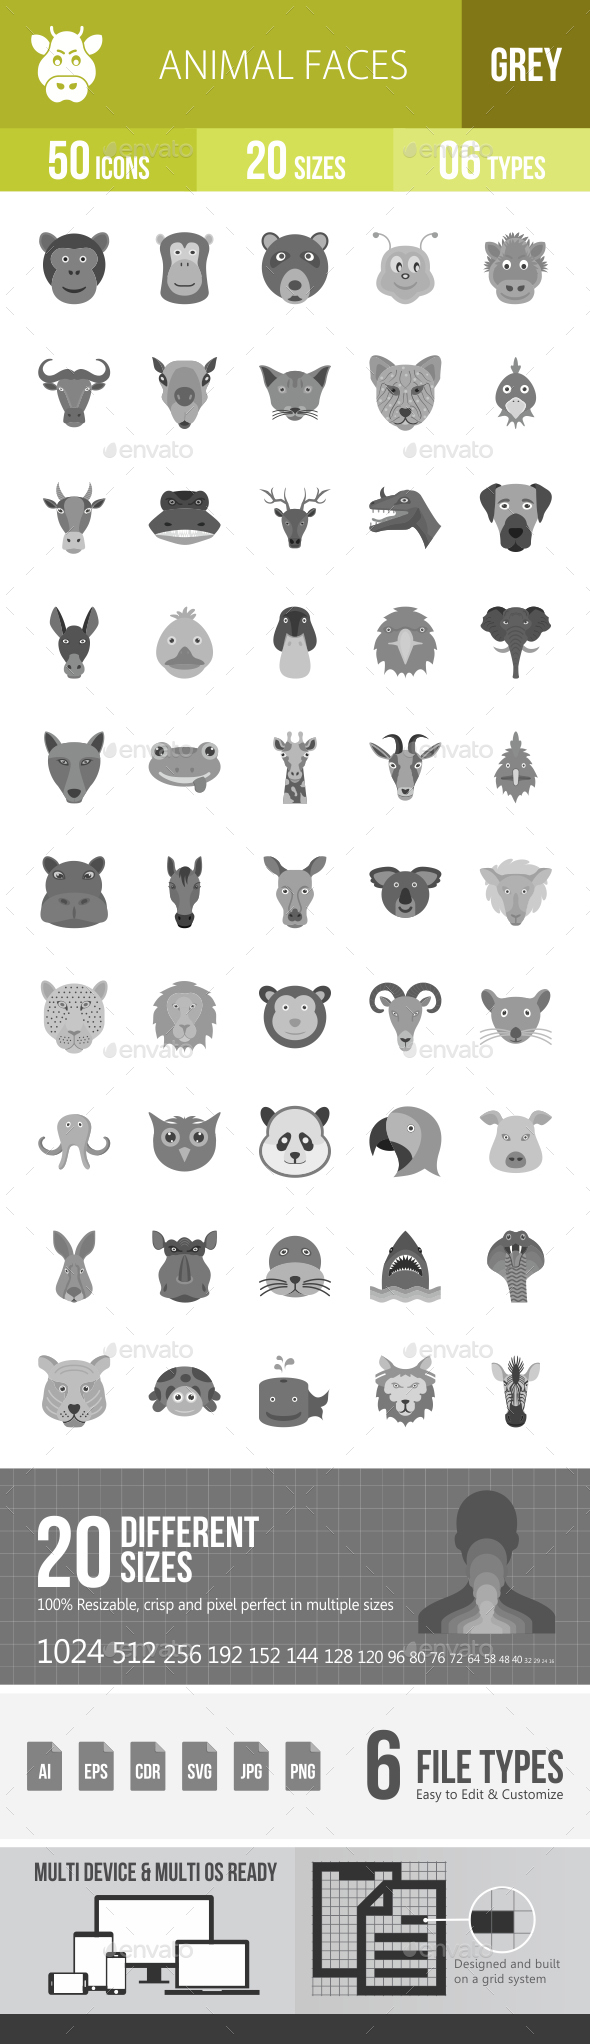 Animal Faces Greyscale Icons - Icons